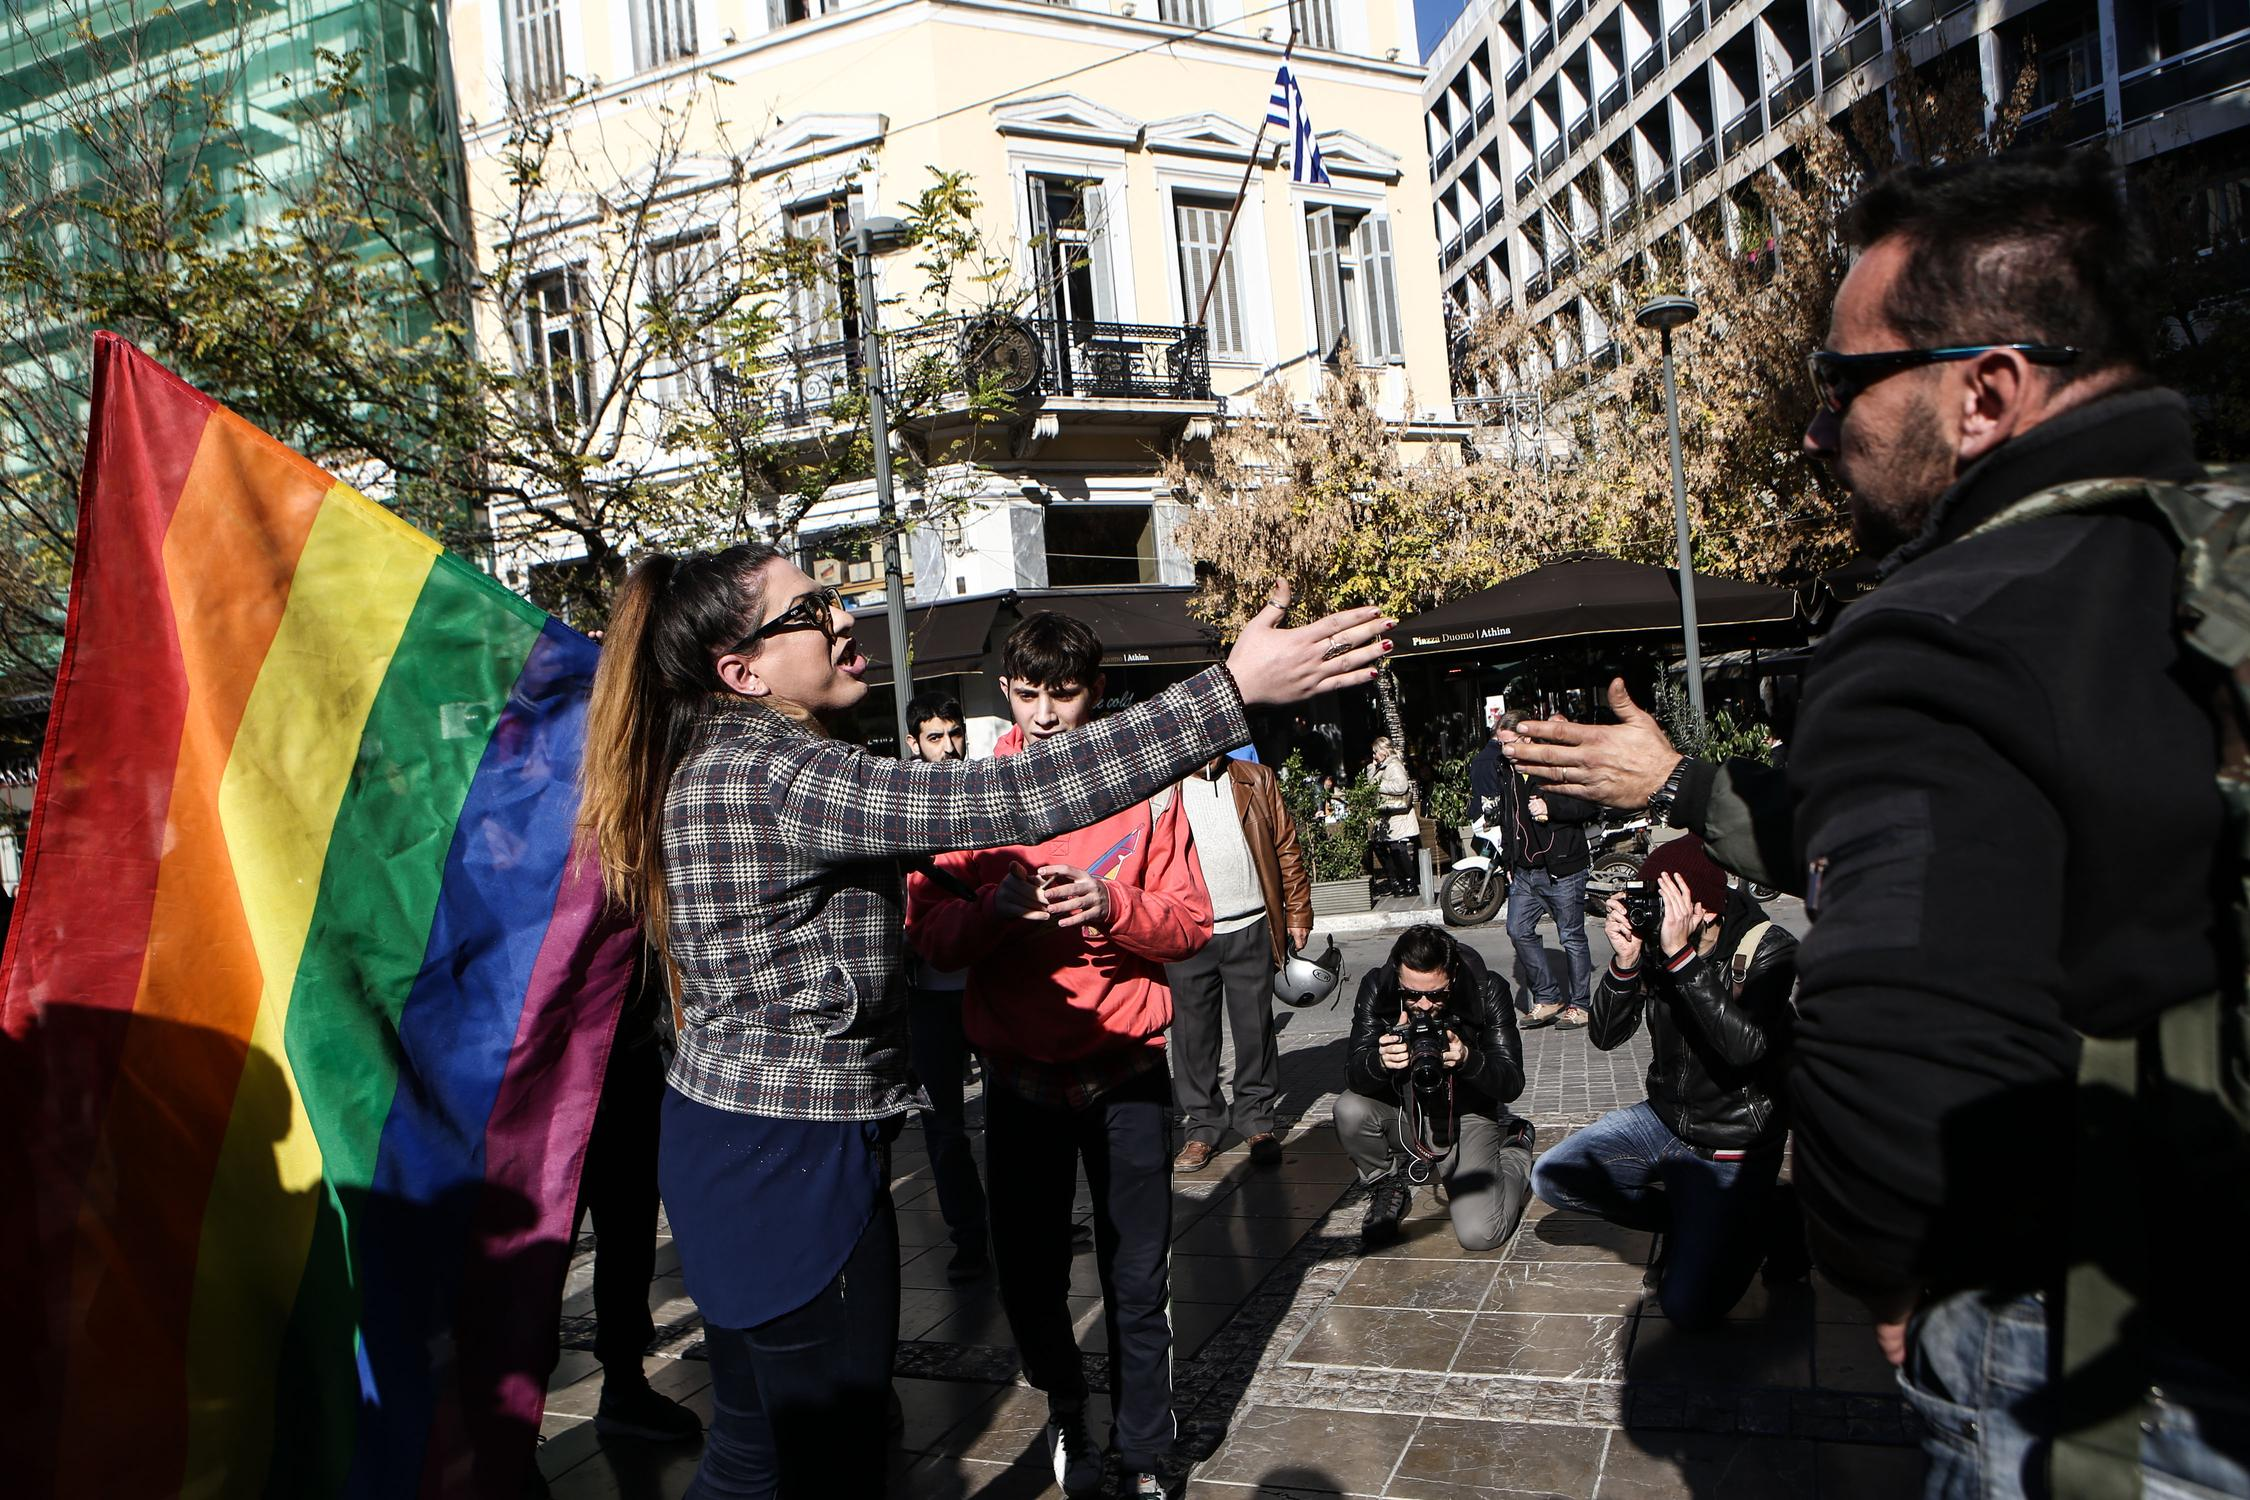 Demonstration by the LGBTQI activist team Queerborg outside the Cathedral of Athens, in Athens, on Dec. 22, 2015 / Διαμαρτυρία της ΛΟΑΤΚΙ ομάδας Queerborg έξω απο τη Μητρόπολη Αθηνών, στην Αθήνα, στις 22 Δεκεμβρίου, 2015